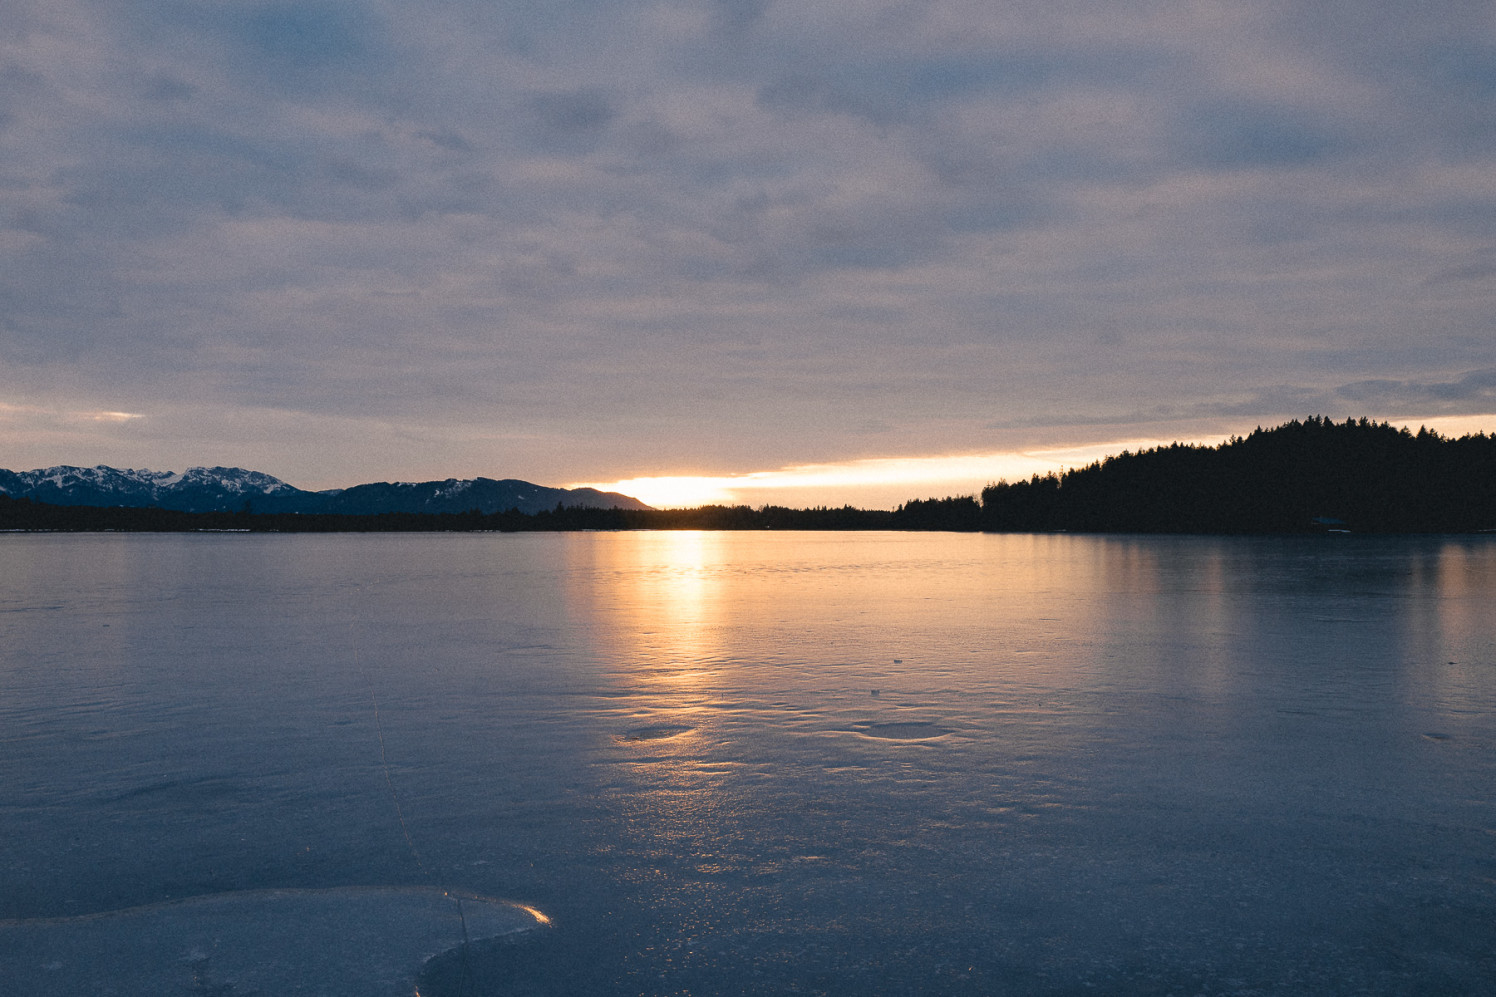 The sun goes down behind mountains in the distance. In the front is a frozen over lake.